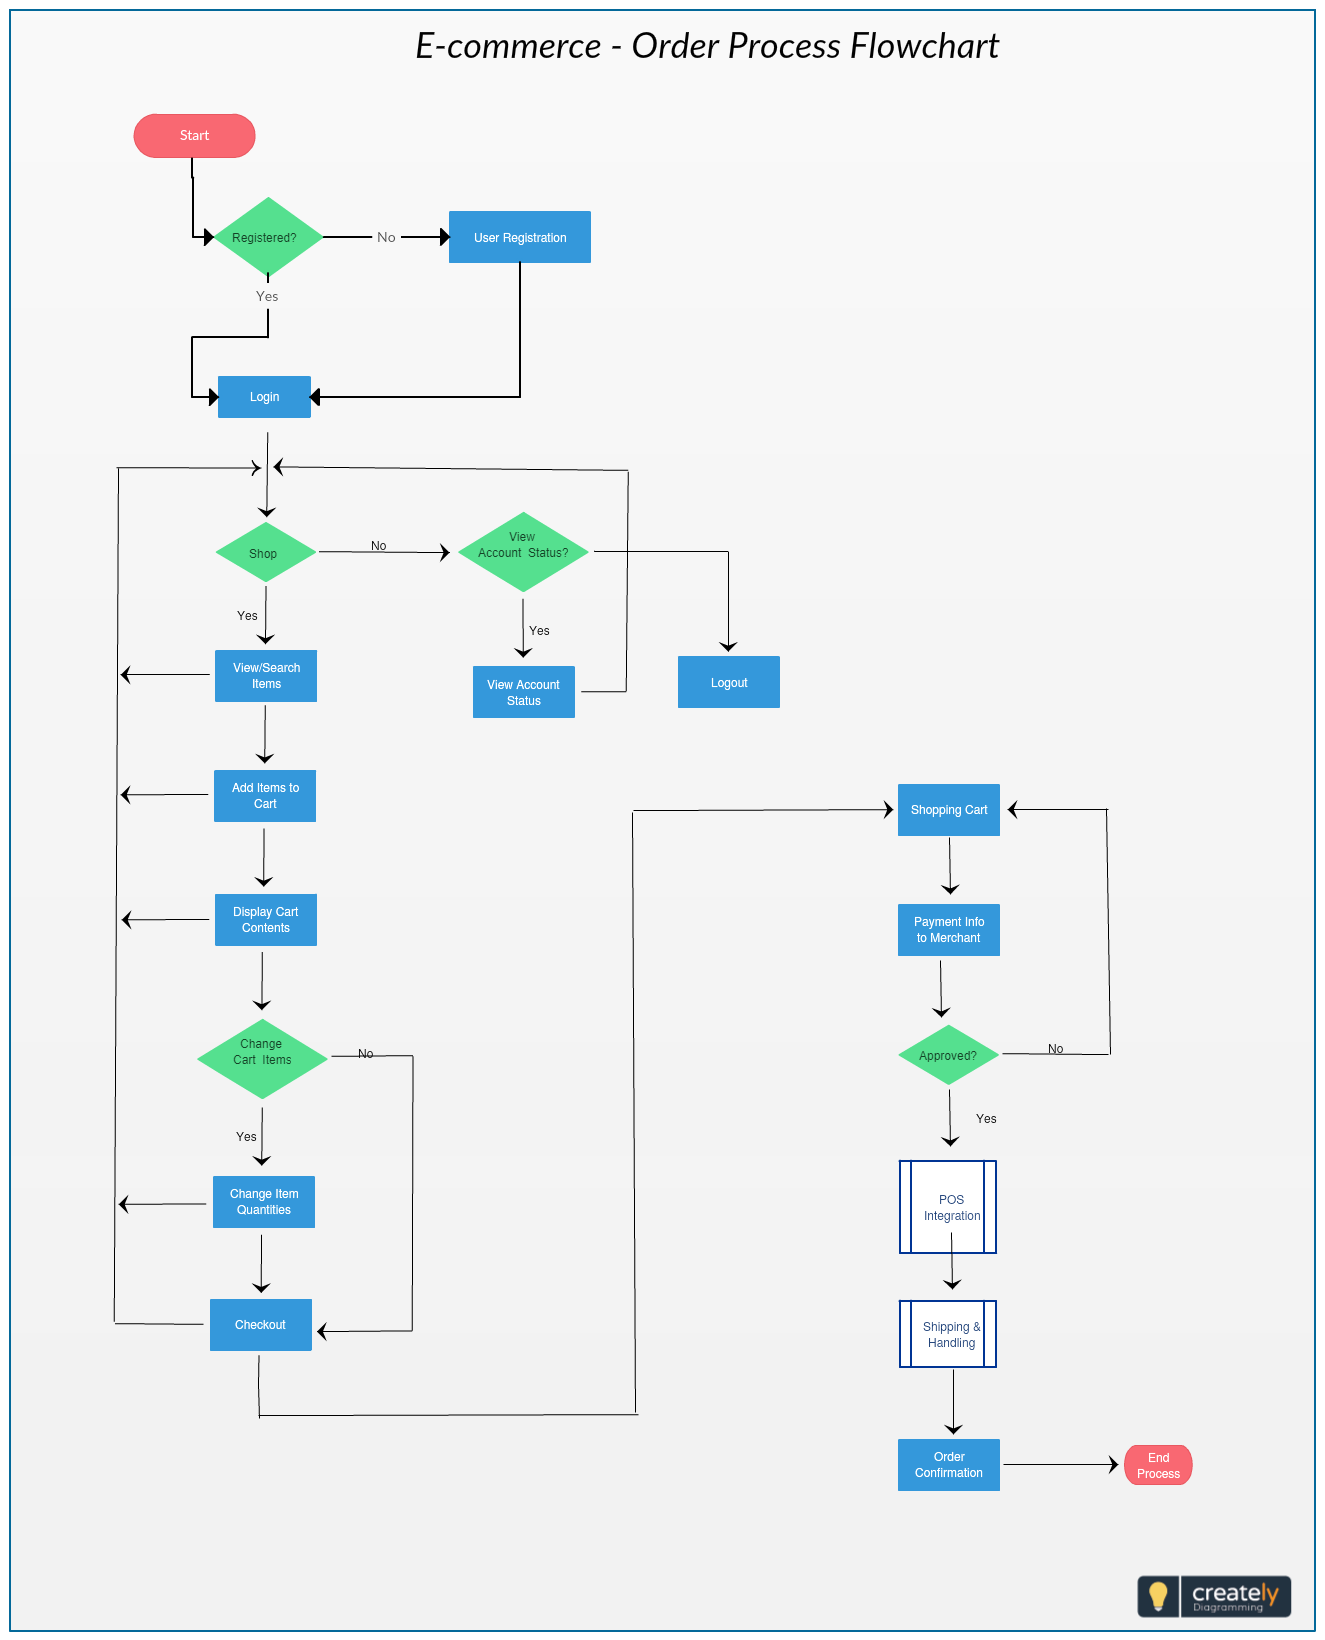 small resolution of in order to maximise sales opportunities and stay cost competitive mapping out your ecommerce processes flowchart can help your business highlight key